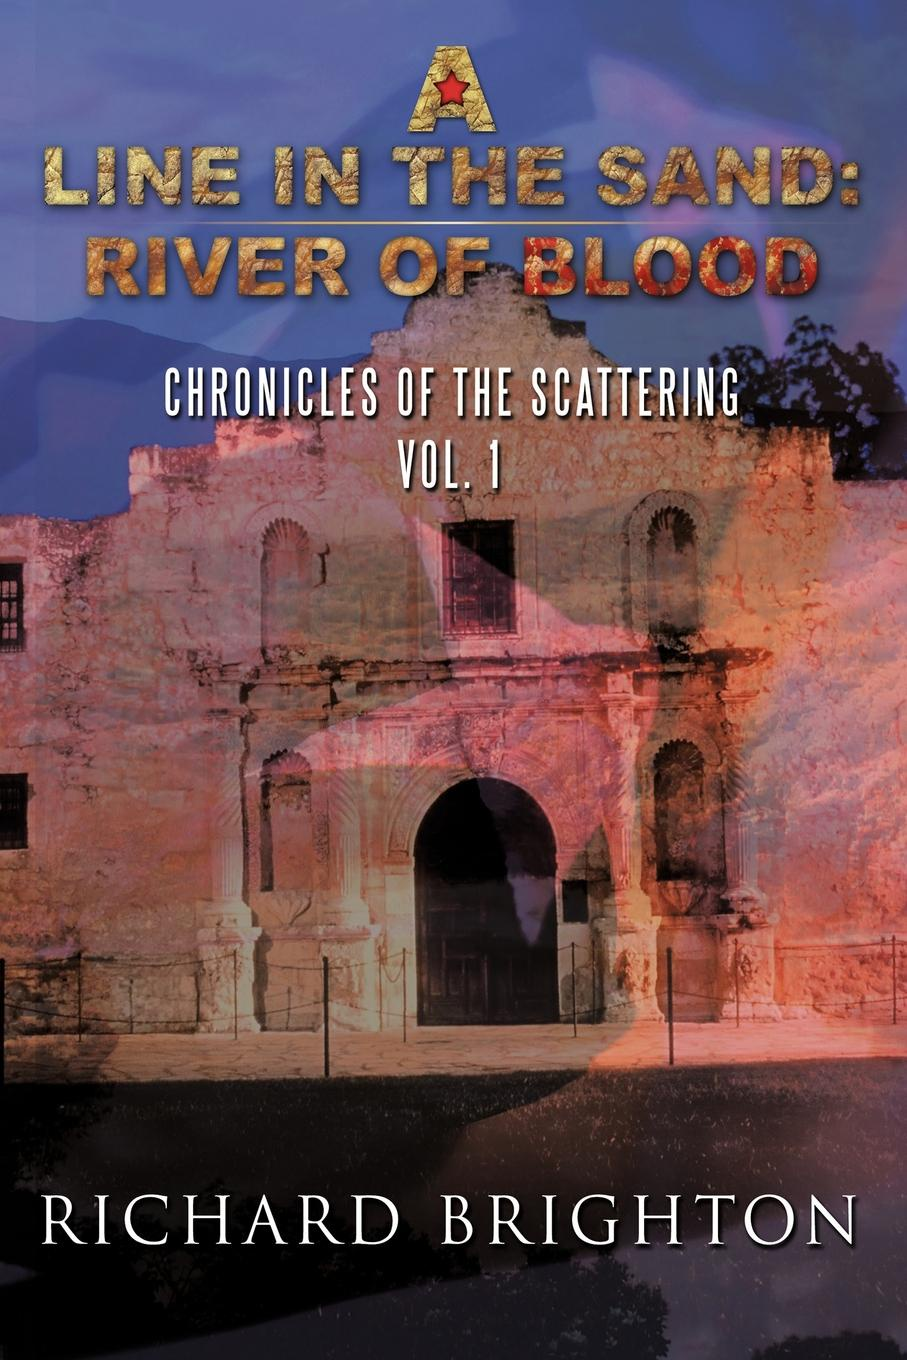 купить Richard Brighton A Line in the Sand. River of Blood: Chronicles of the Scattering, Vol. I по цене 1989 рублей